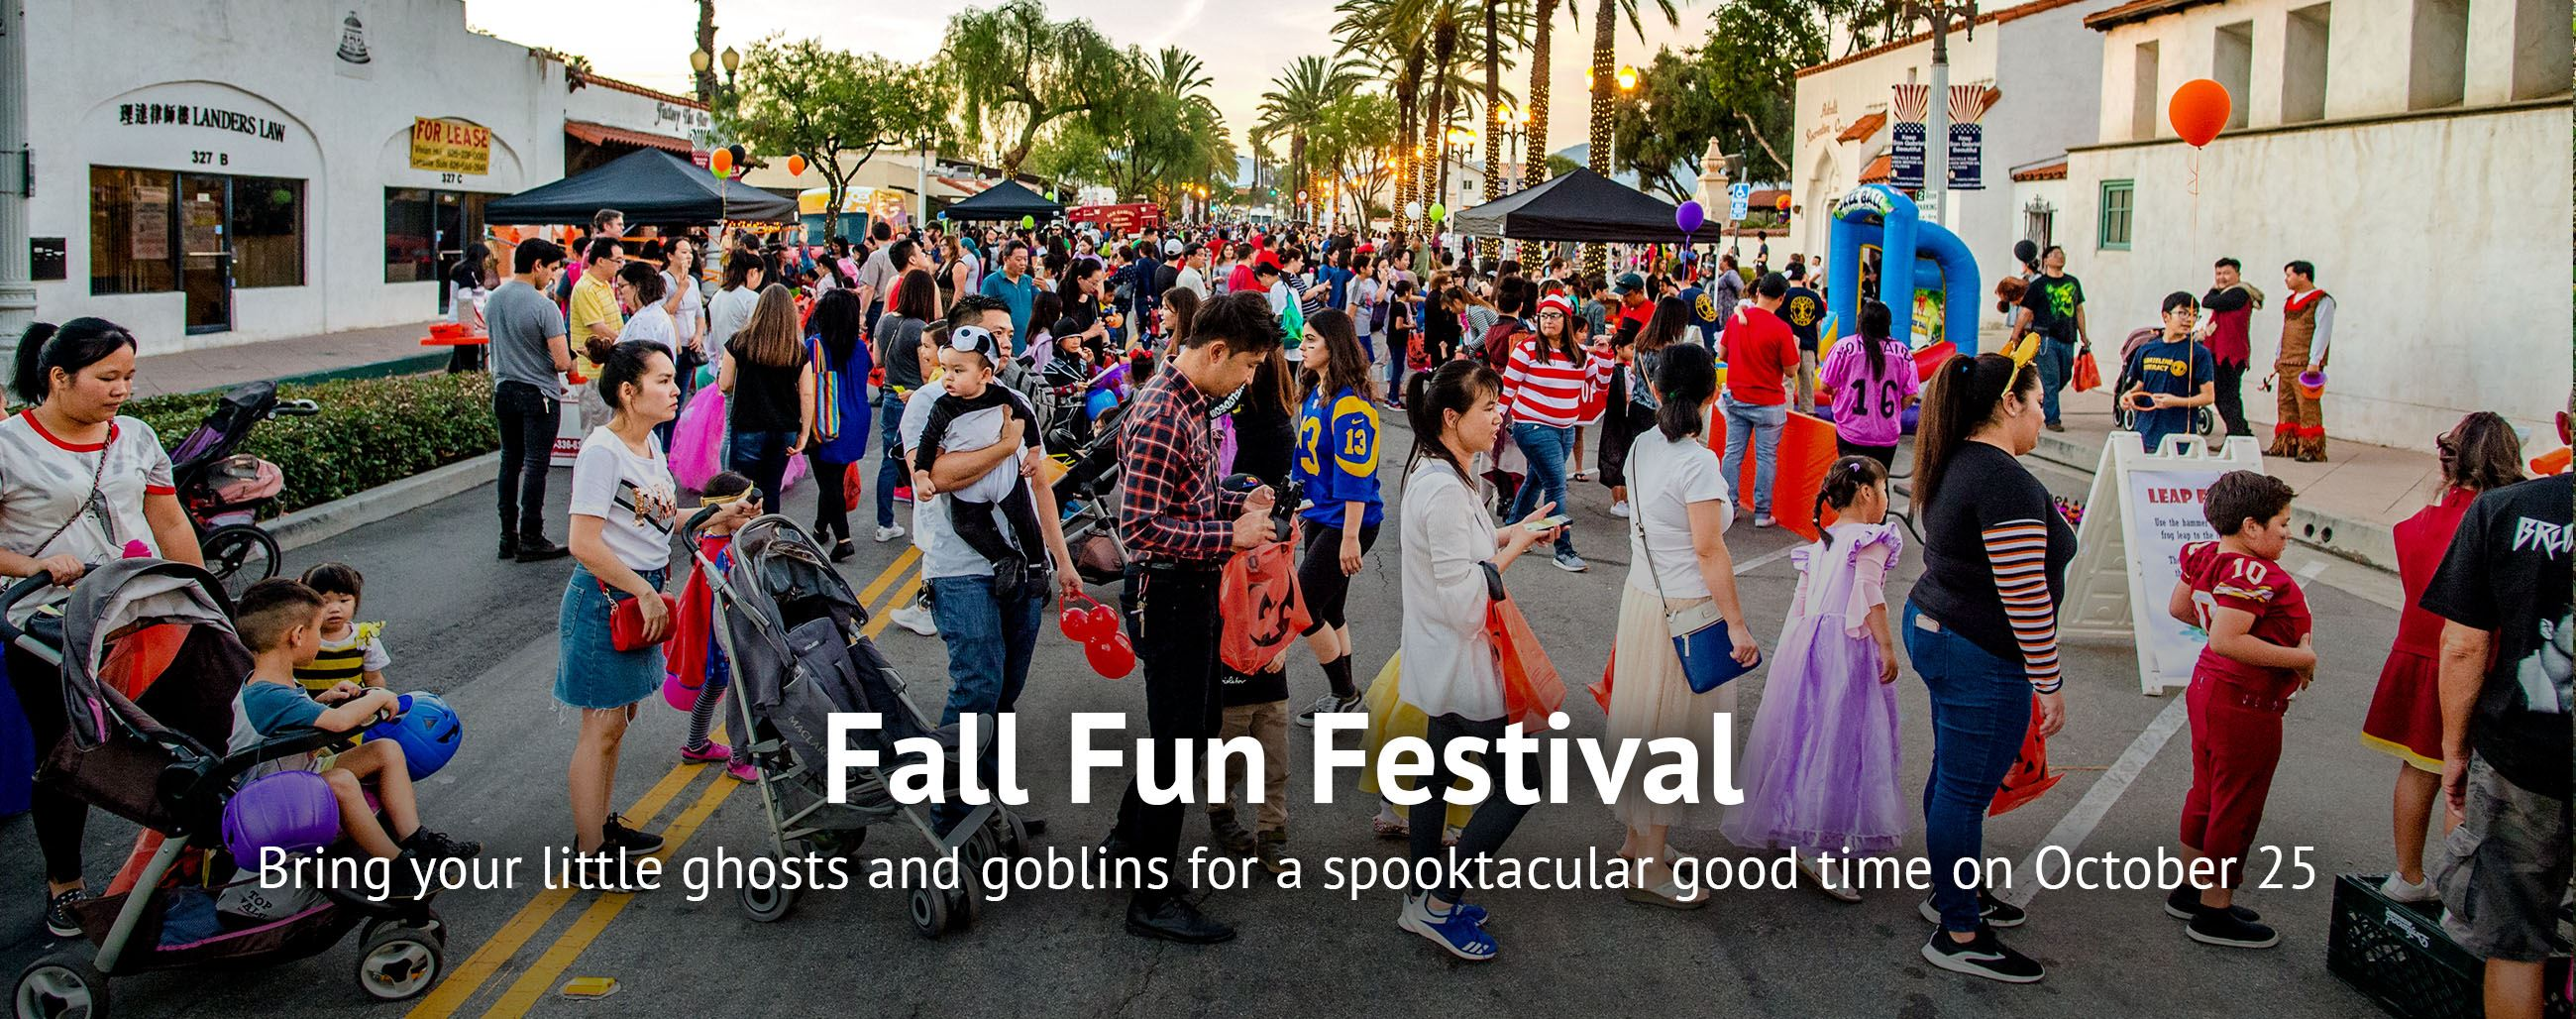 Bring your little ghosts and goblins for a spooktacular good time on October 25